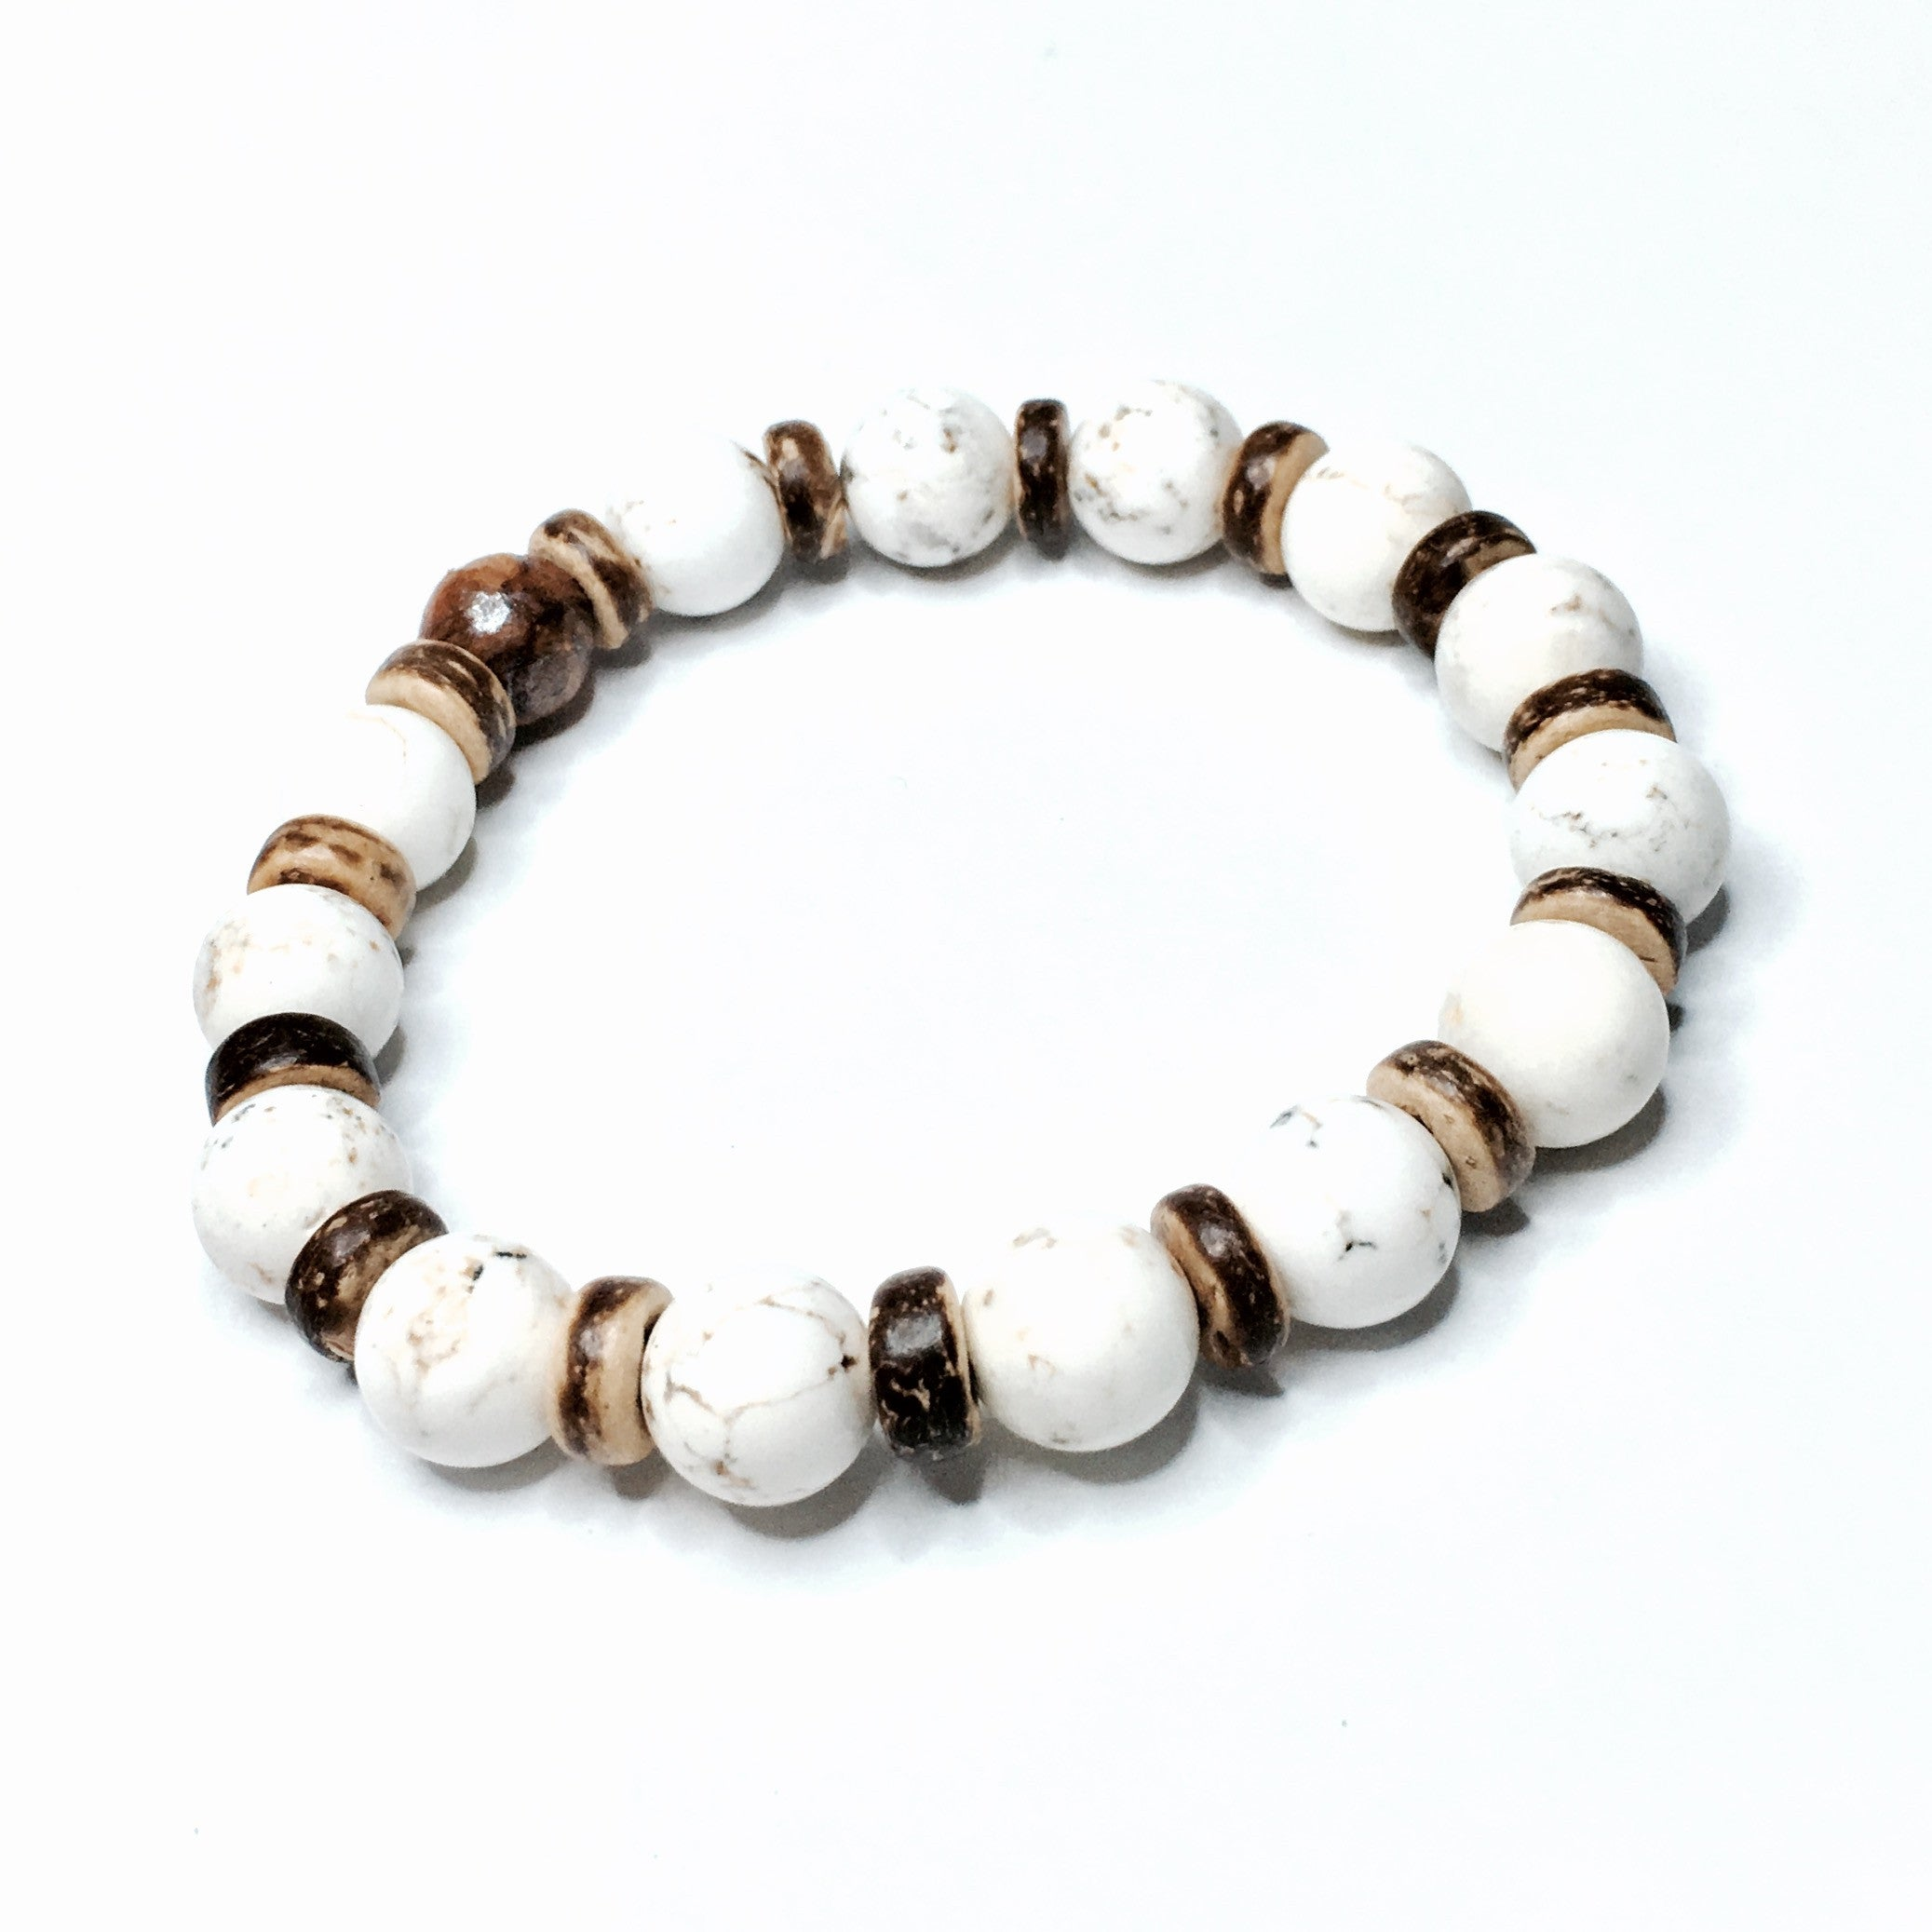 HOWLITE WITH WOOD ACCENTS BRACELET